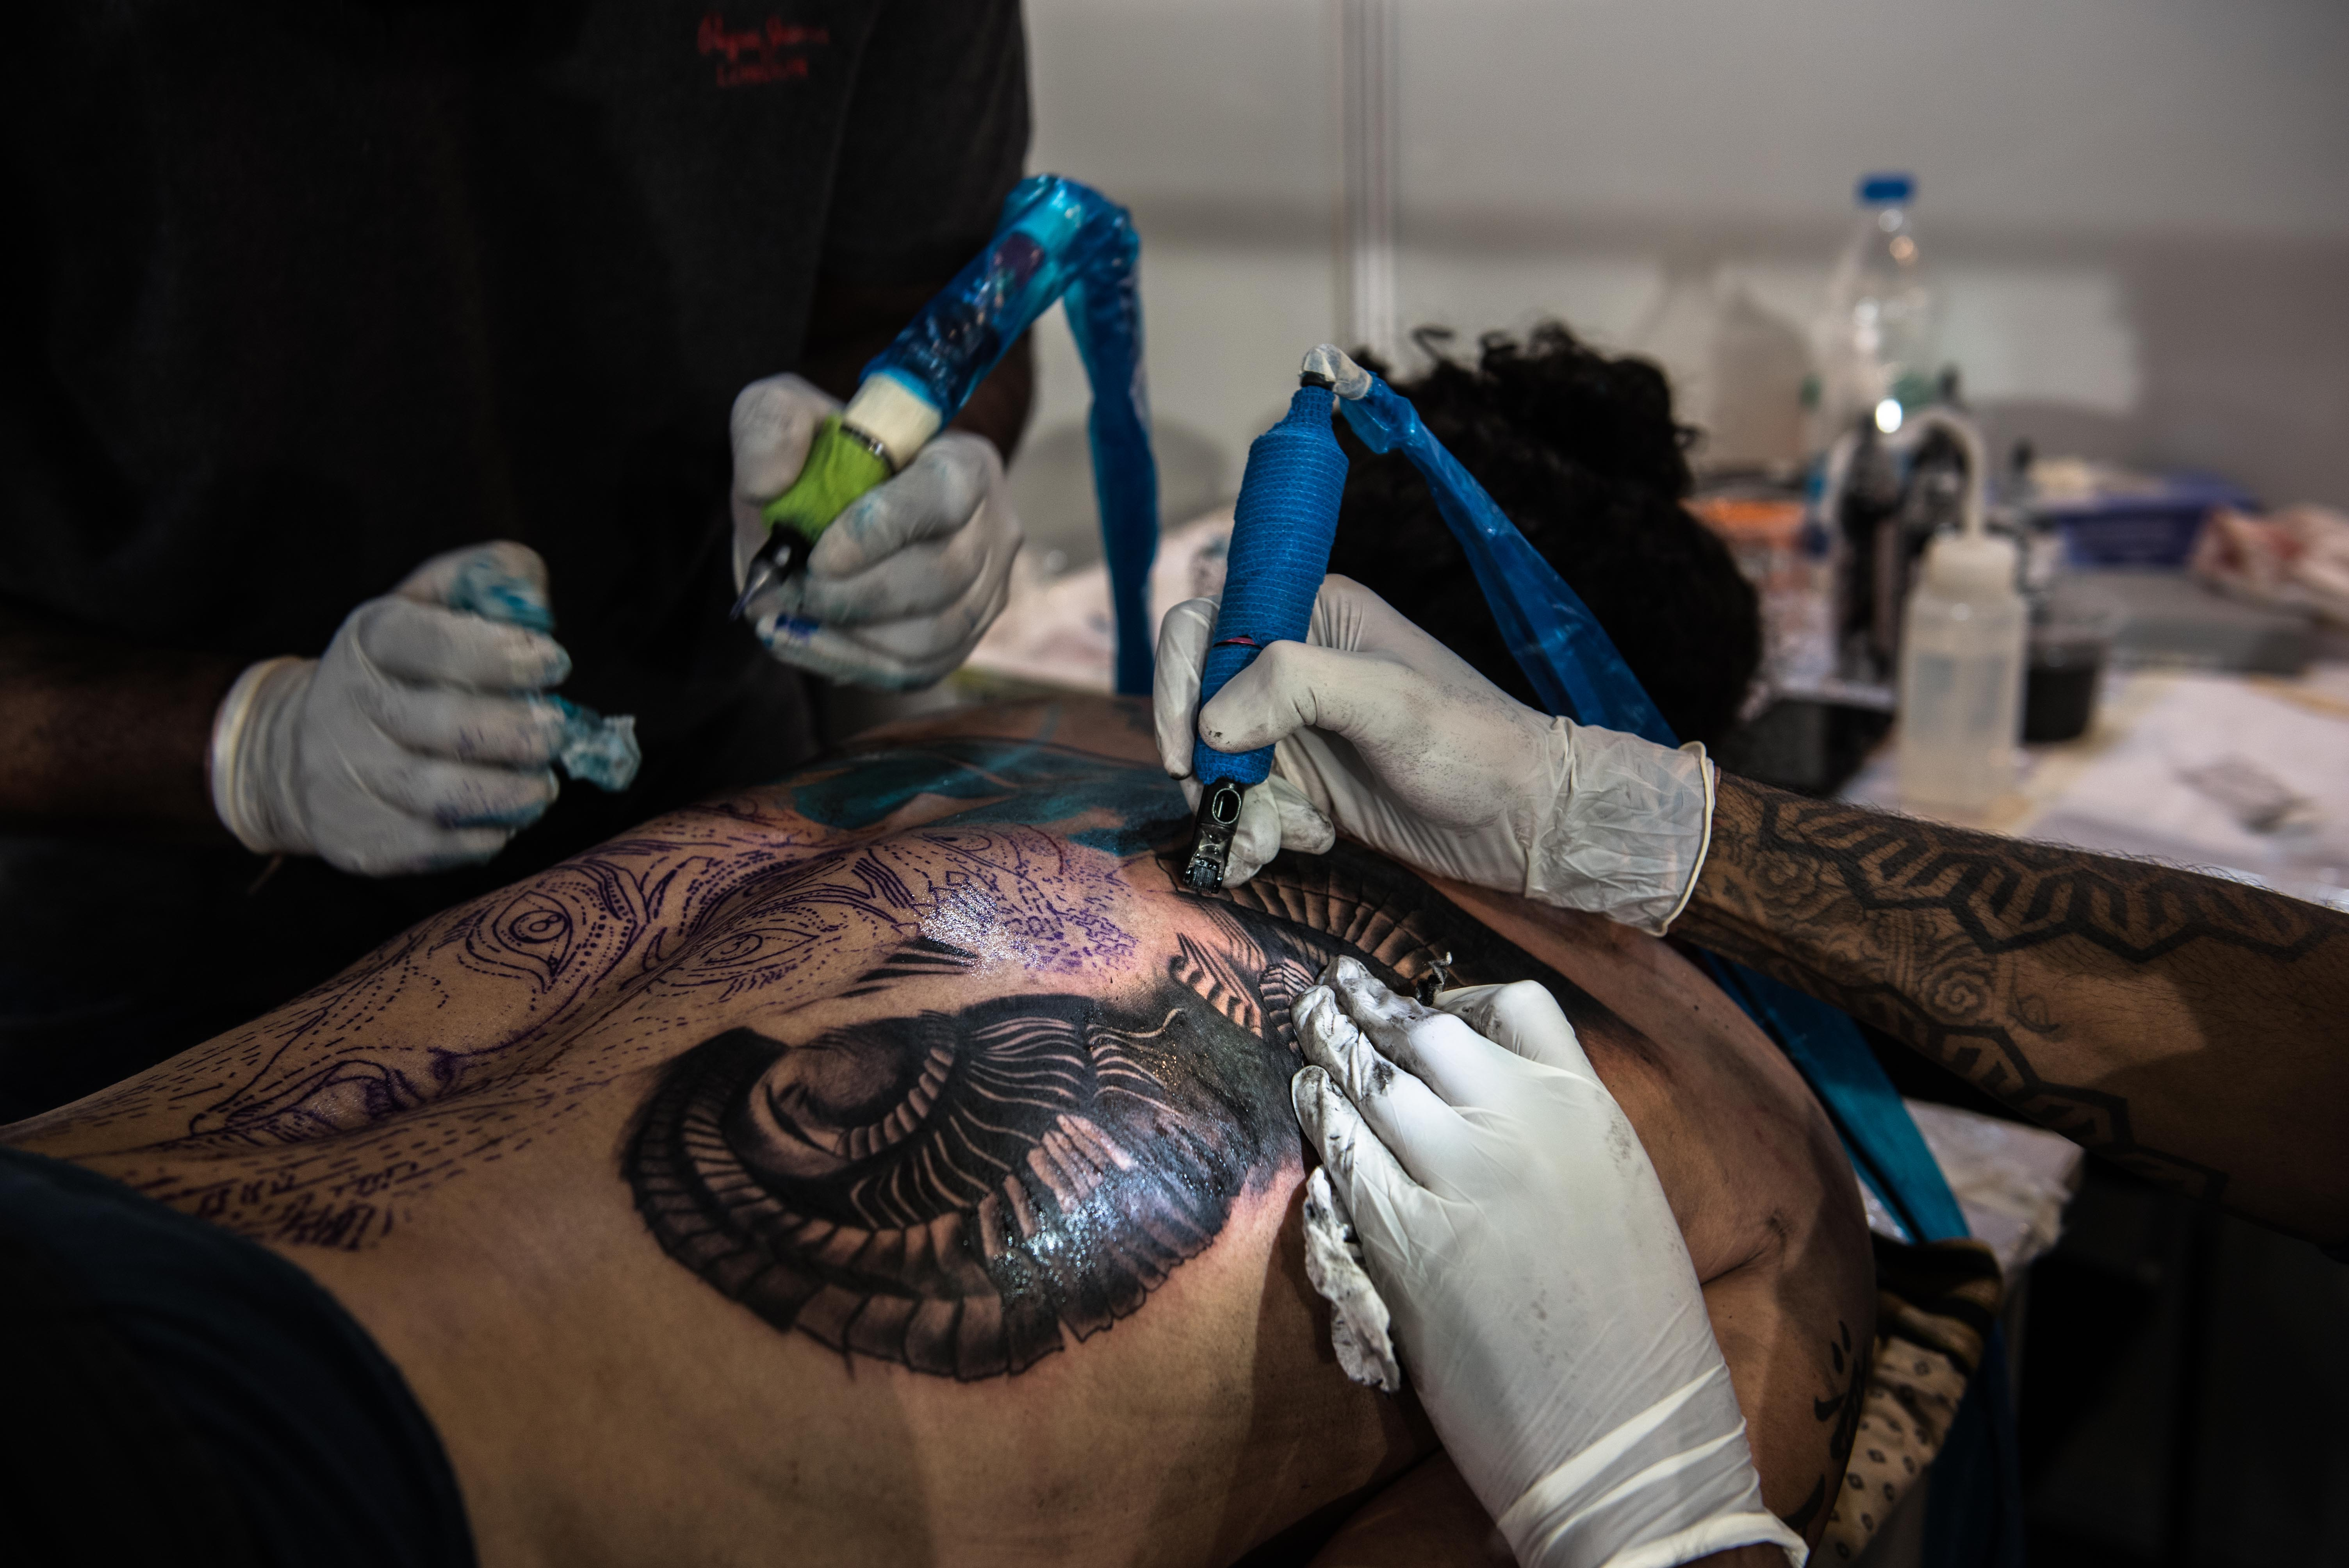 Mangesh Rane and Amit Spyd of Sabby's Tattoo Studio, Pune working on a collab. All images © S Chak